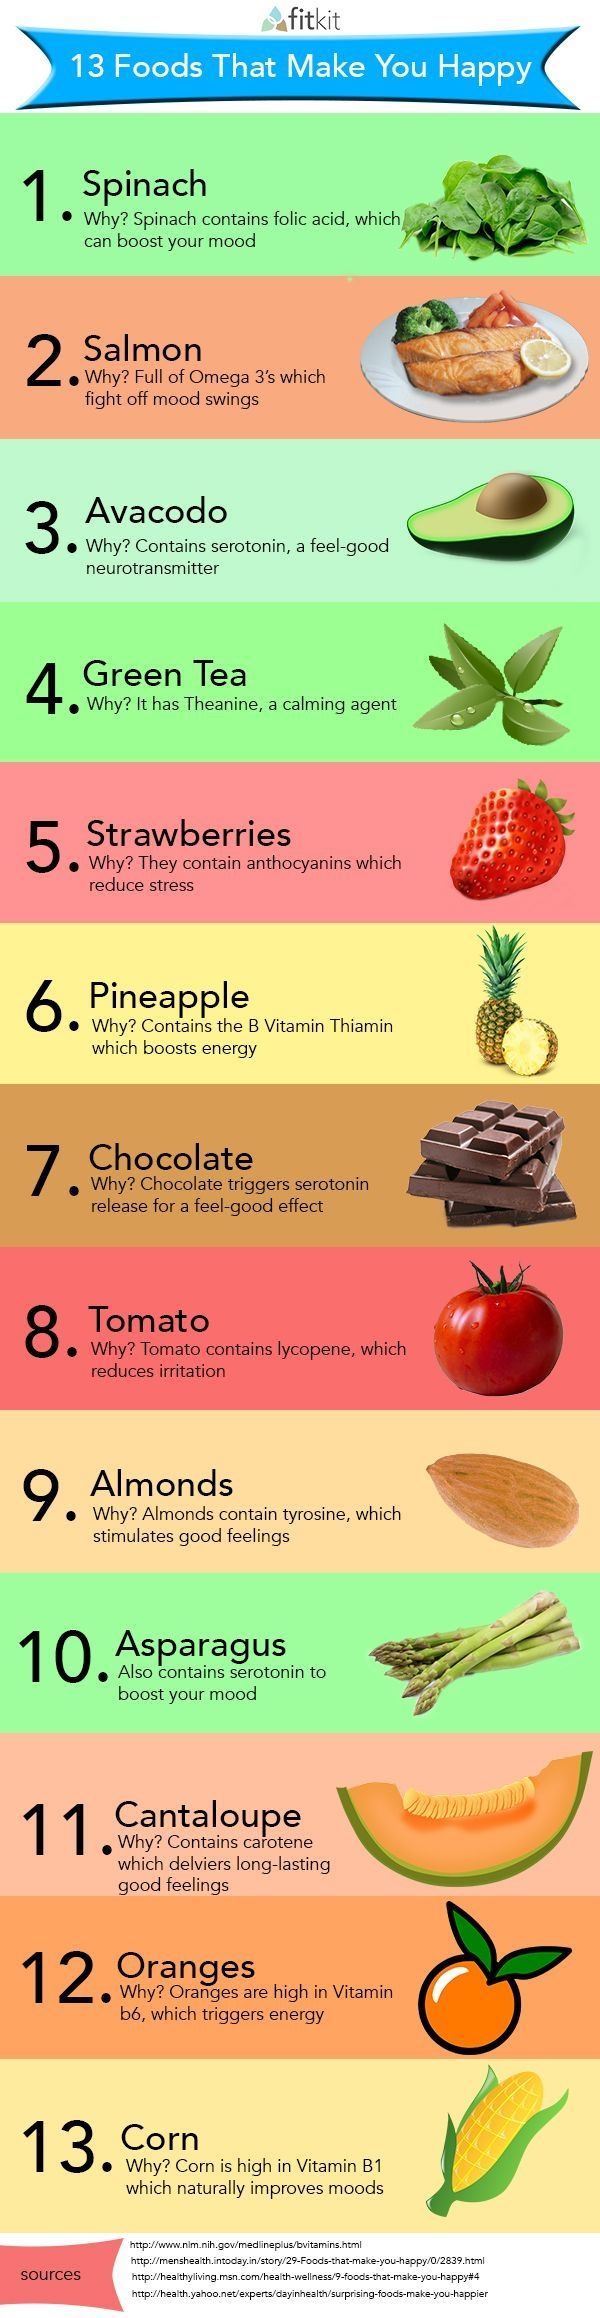 These 13 Foods That Make You Happy! fruit healthy motivation nutrition veggie weightloss almonds anthrocyanins asparagus avocado cantaloupes carotene chocolate corn energy folic acid lycopene mood omega 3 fatty acids Oranges pineapples Salmon serotonin Spinach strawberries tea theanine thiamin tomatoes tyrosine vitamin B vitamin B1 vitamin B6 vitamins http://ift.tt/1LRDALd Posted by Nadine Lourens